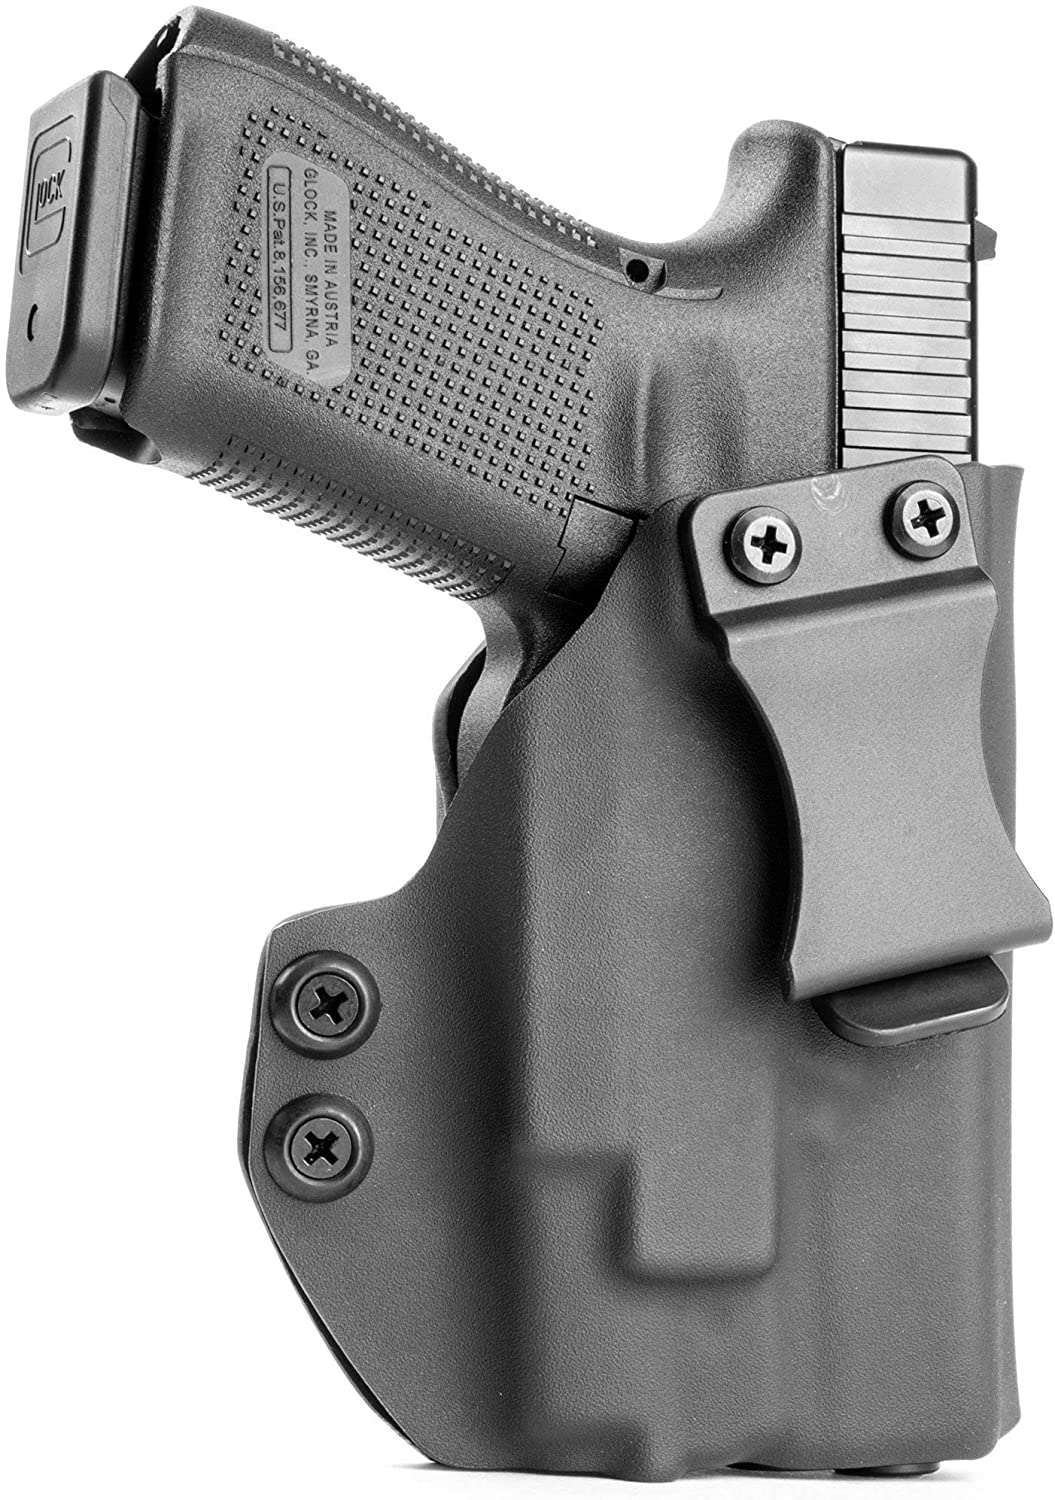 RR Holsters: IWB Kydex Holster for Memphis Mall Miami Mall Guns 2 with V PL-Mini OLIGHT